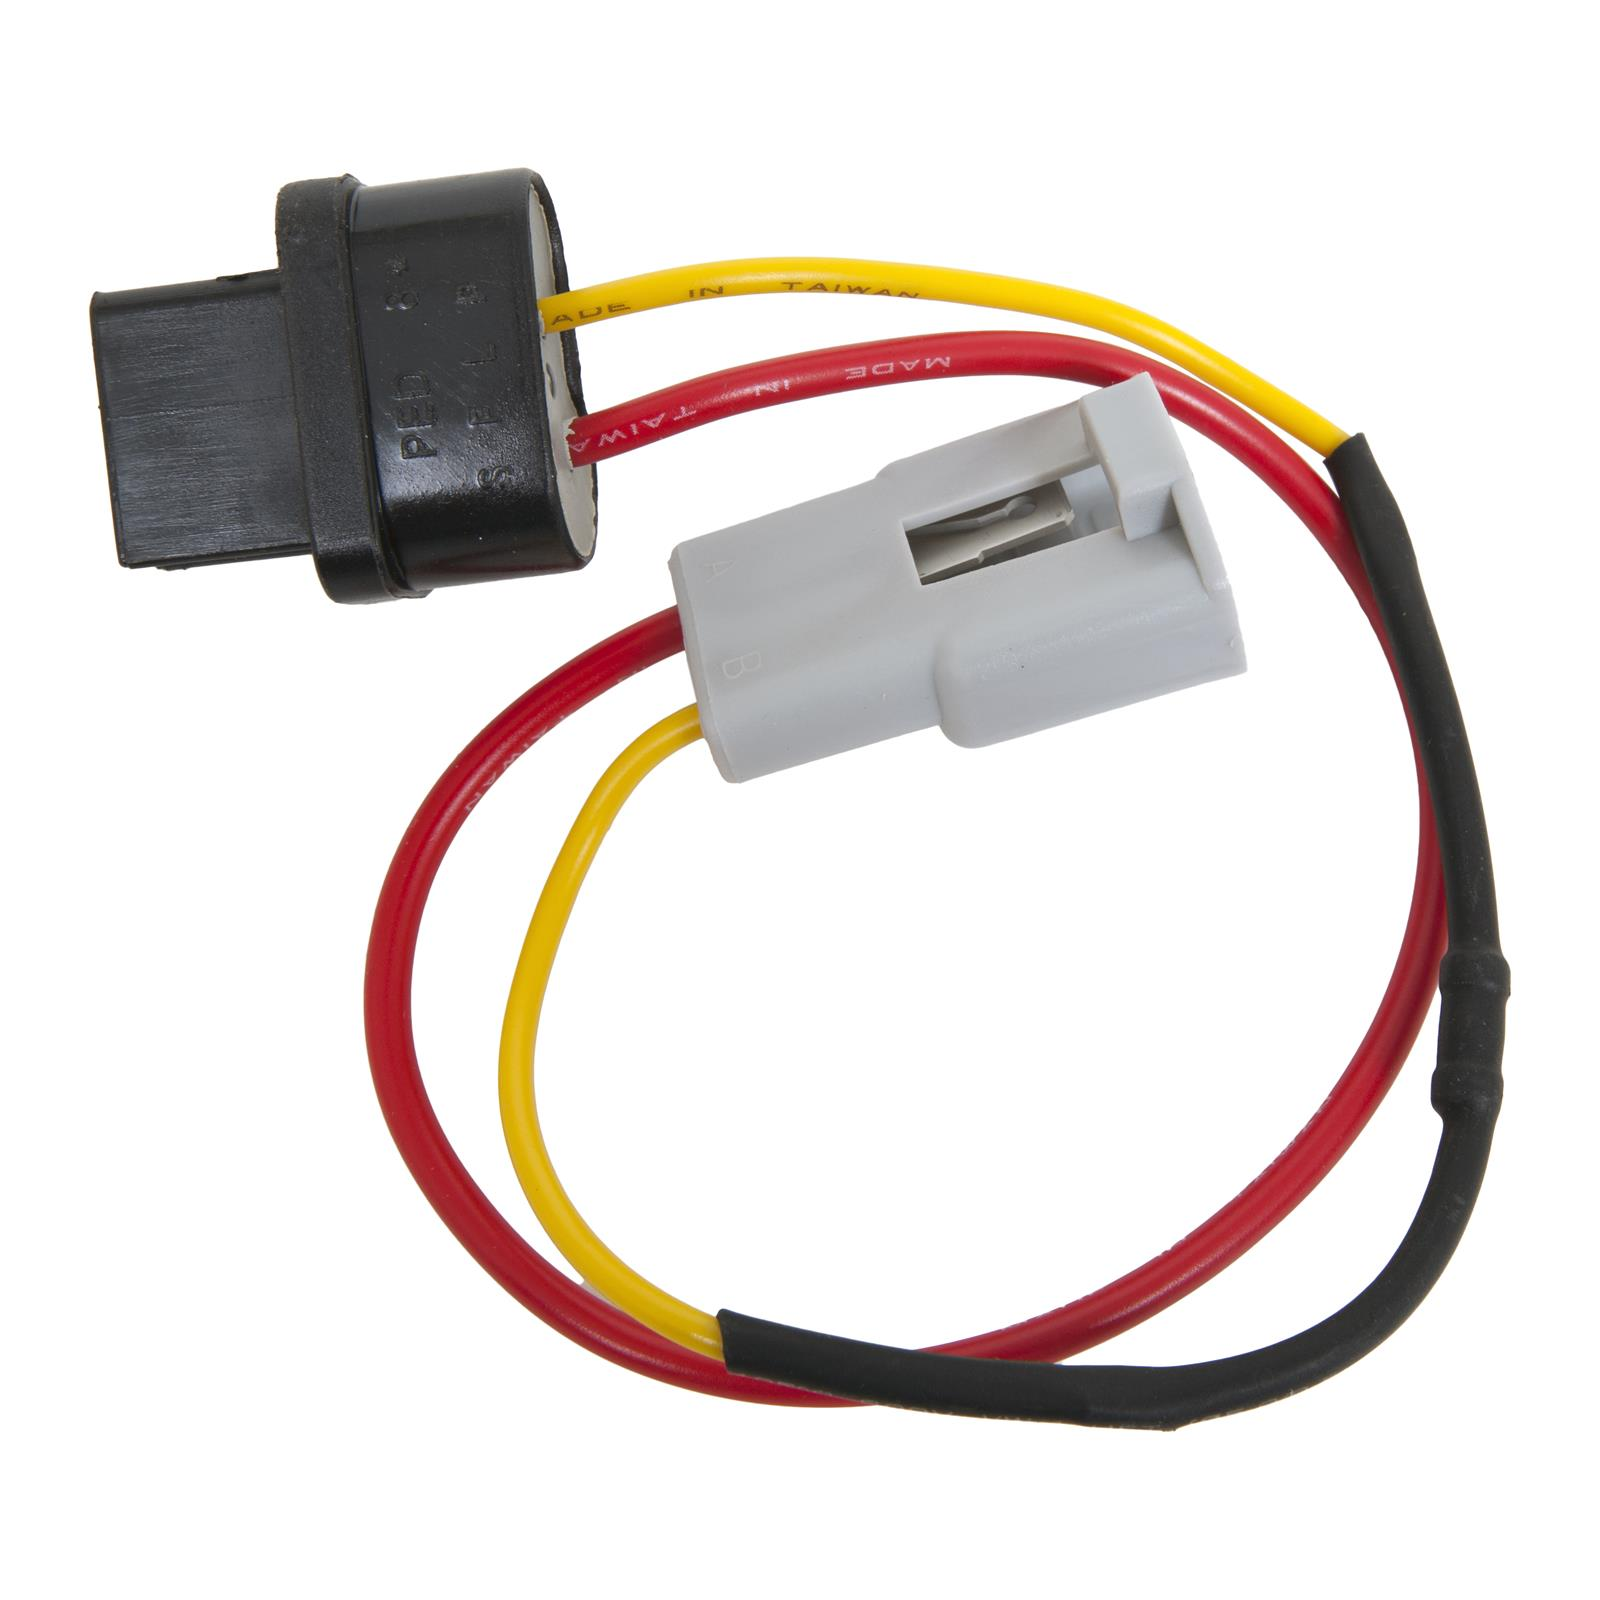 ado pt2145_xl acdelco replacement wiring harness connectors pt2145 free wiring harness connectors at aneh.co